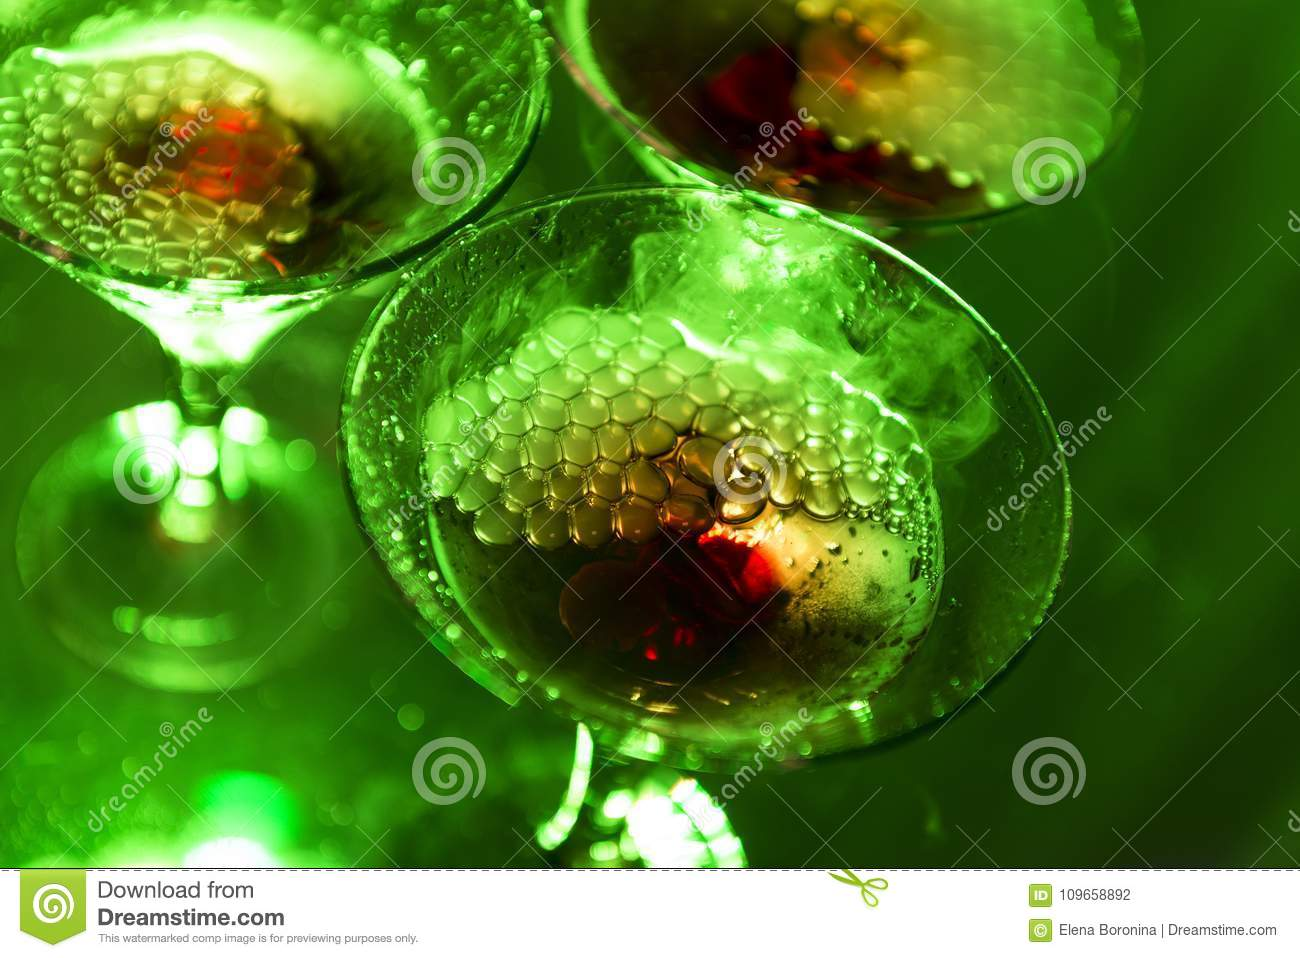 Three, 3 champagne glass in green color, bubbly, alcoholic drink